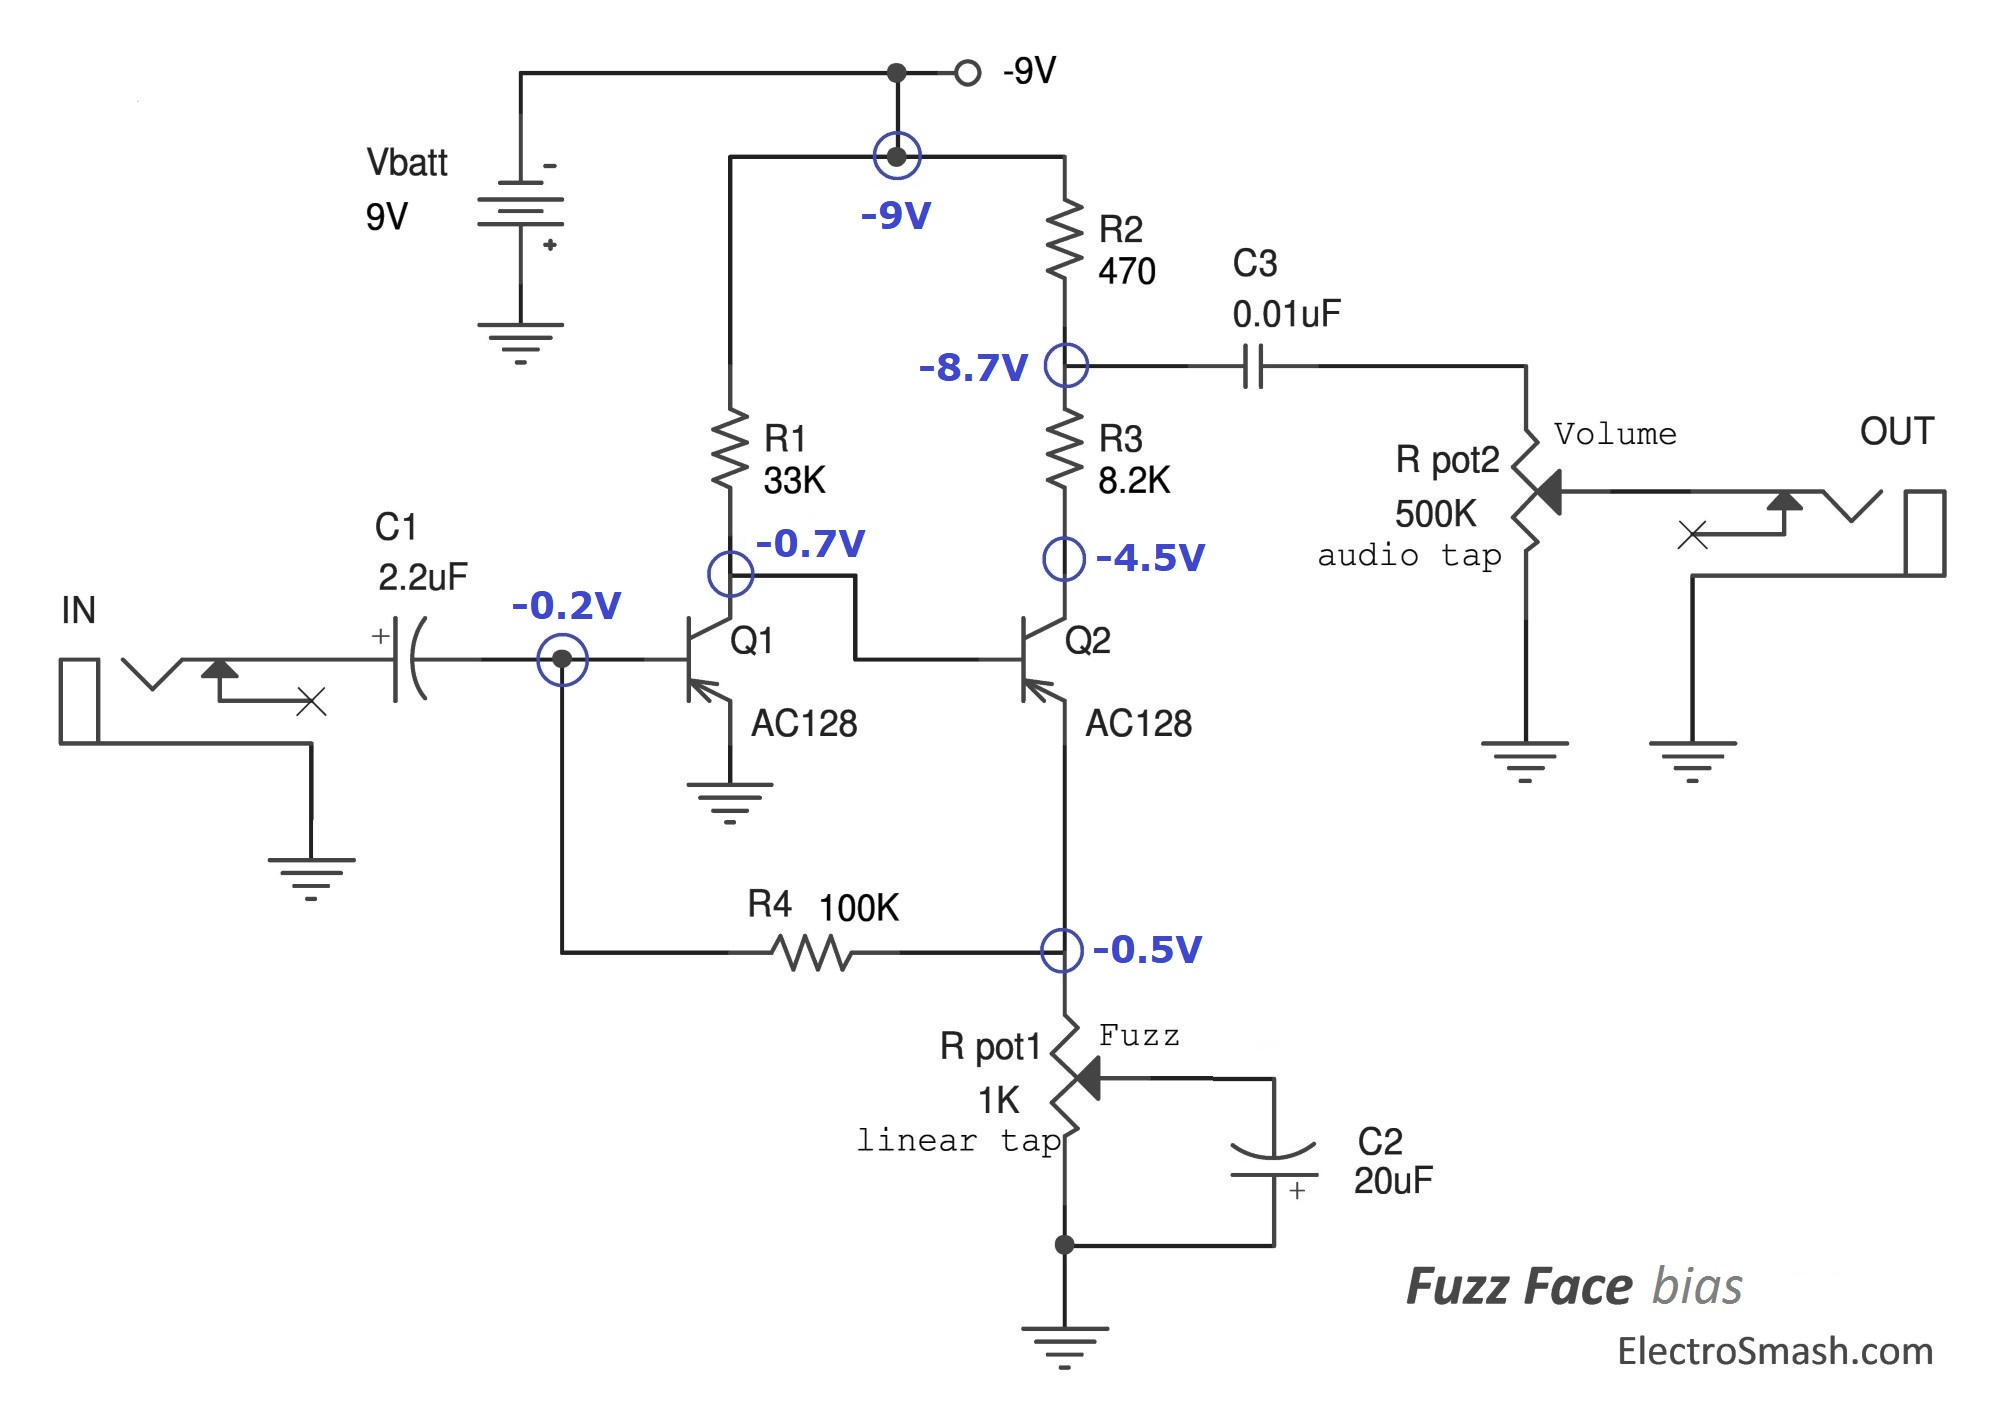 ElectroSmash - Fuzz Face ysis on wah schematic, distortion schematic, mutron iii schematic, ts9 schematic, compressor schematic, univibe schematic, simple tube amp schematic, solar charge controller schematic, super fuzz schematic, simple fuzz box schematic, 3 pole double throw switch schematic, harmonic percolator schematic, muff fuzz schematic, tremolo schematic, overdrive schematic, marshall schematic, colorsound overdriver schematic, tube screamer schematic, fuzz pedal schematic, tube driver schematic,